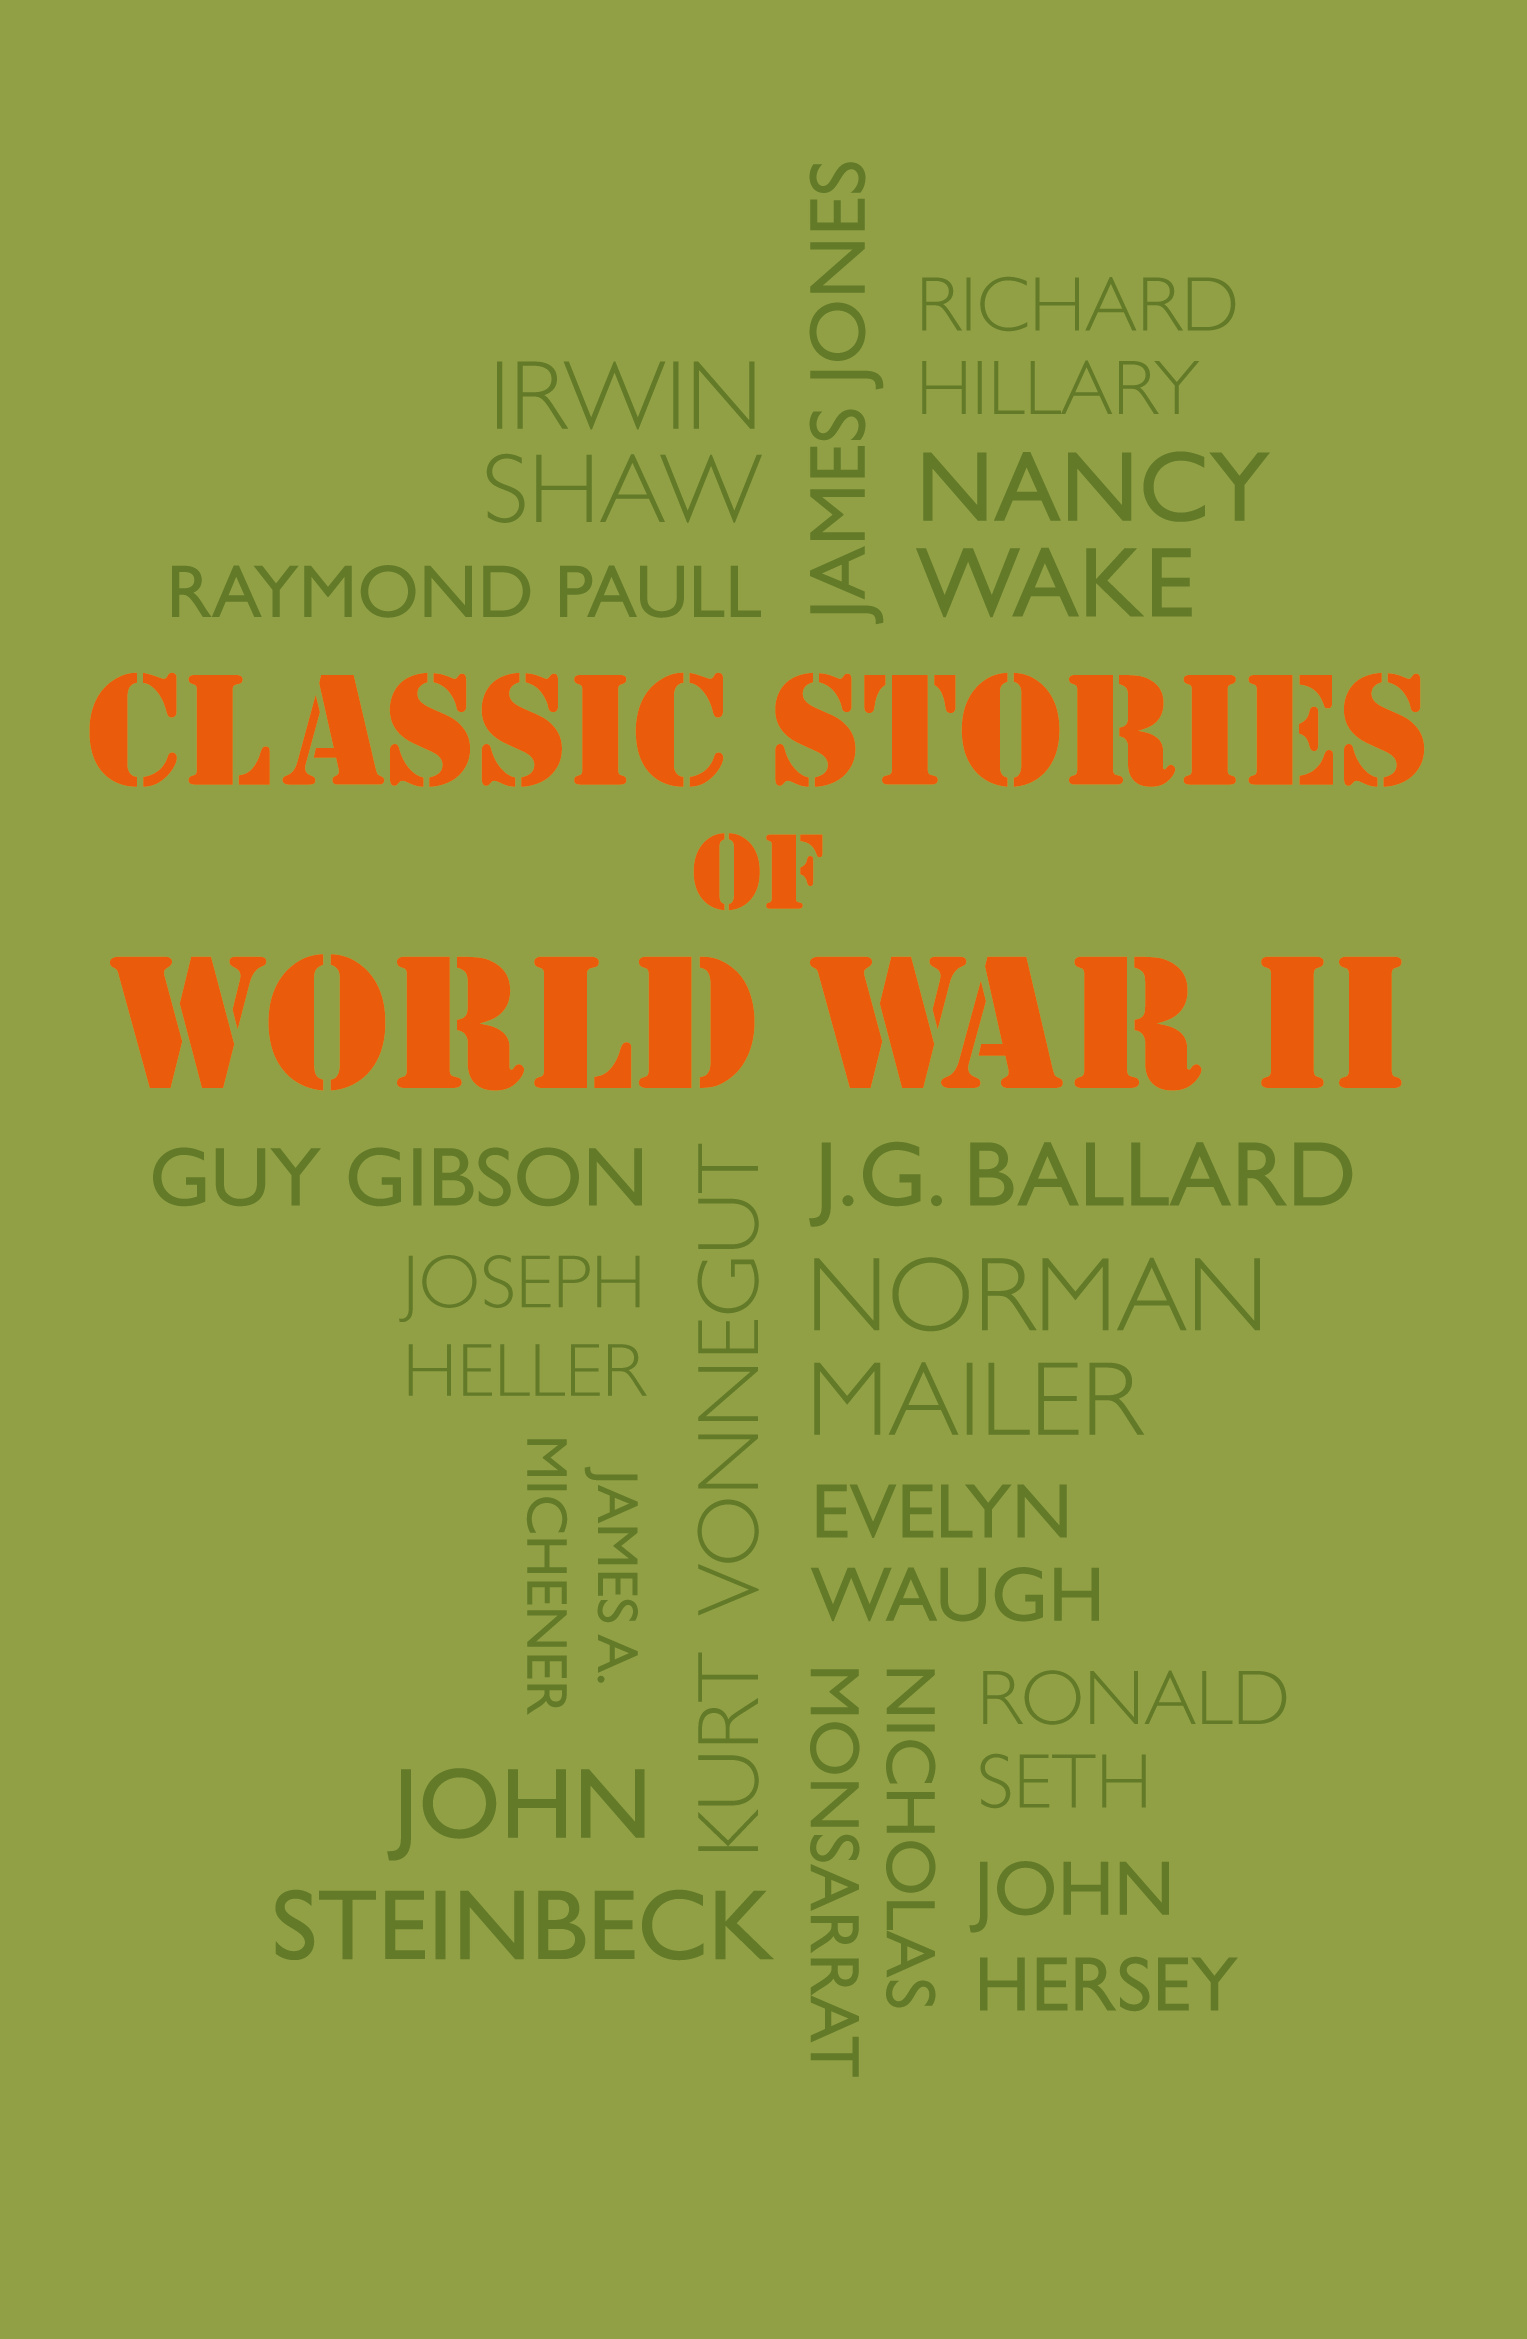 Classic Stories of World War II